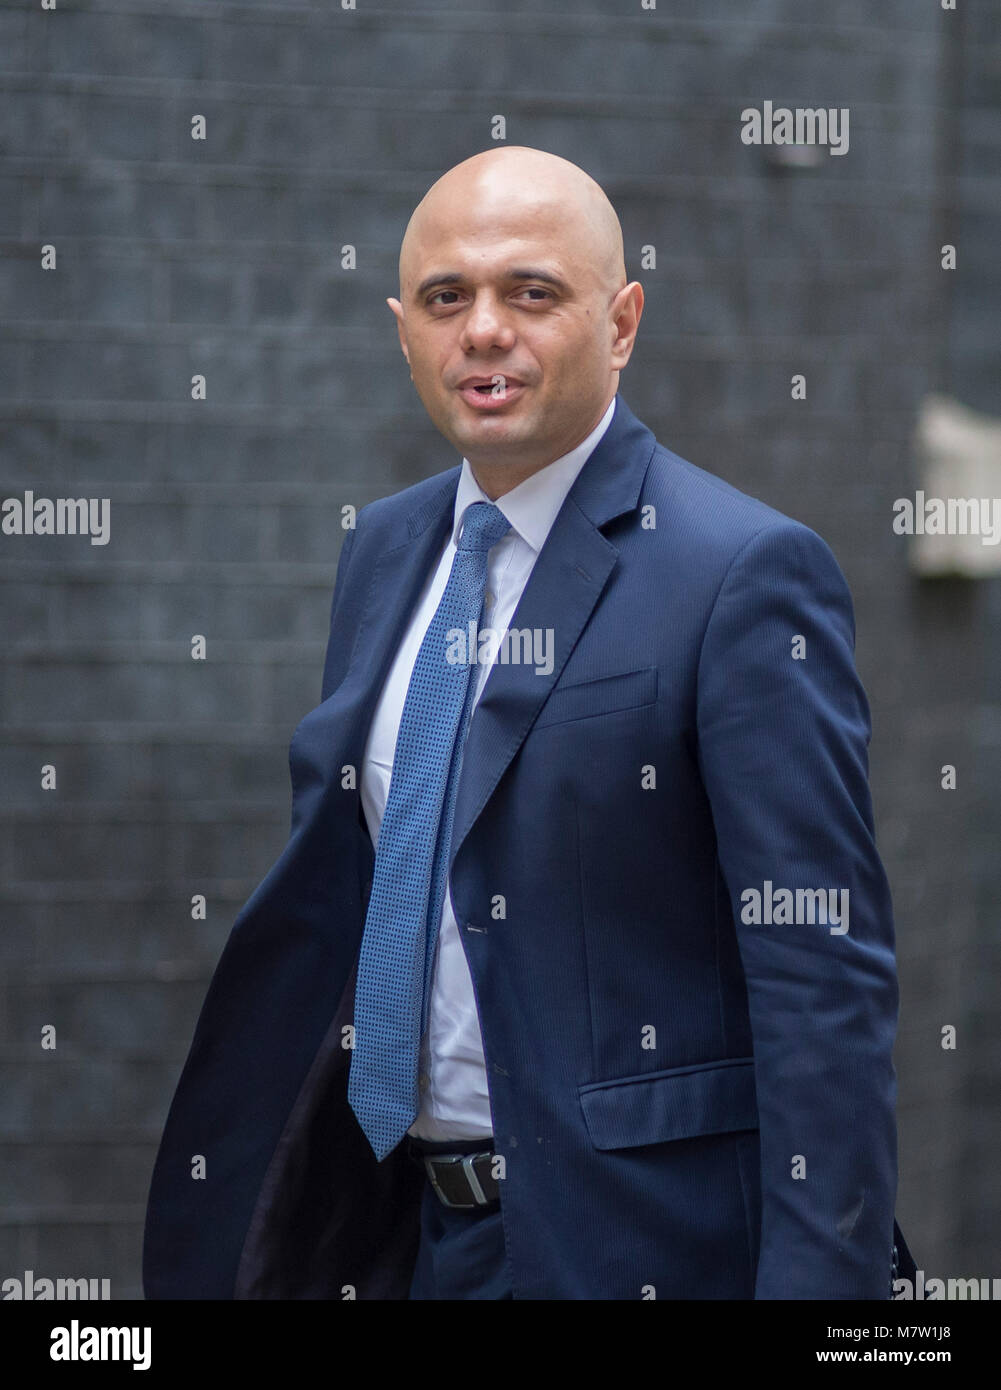 Downing Street, London, UK. 13 March 2018. Sajid Javid, Secretary of State for Housing, Communities and Local Government - Stock Image